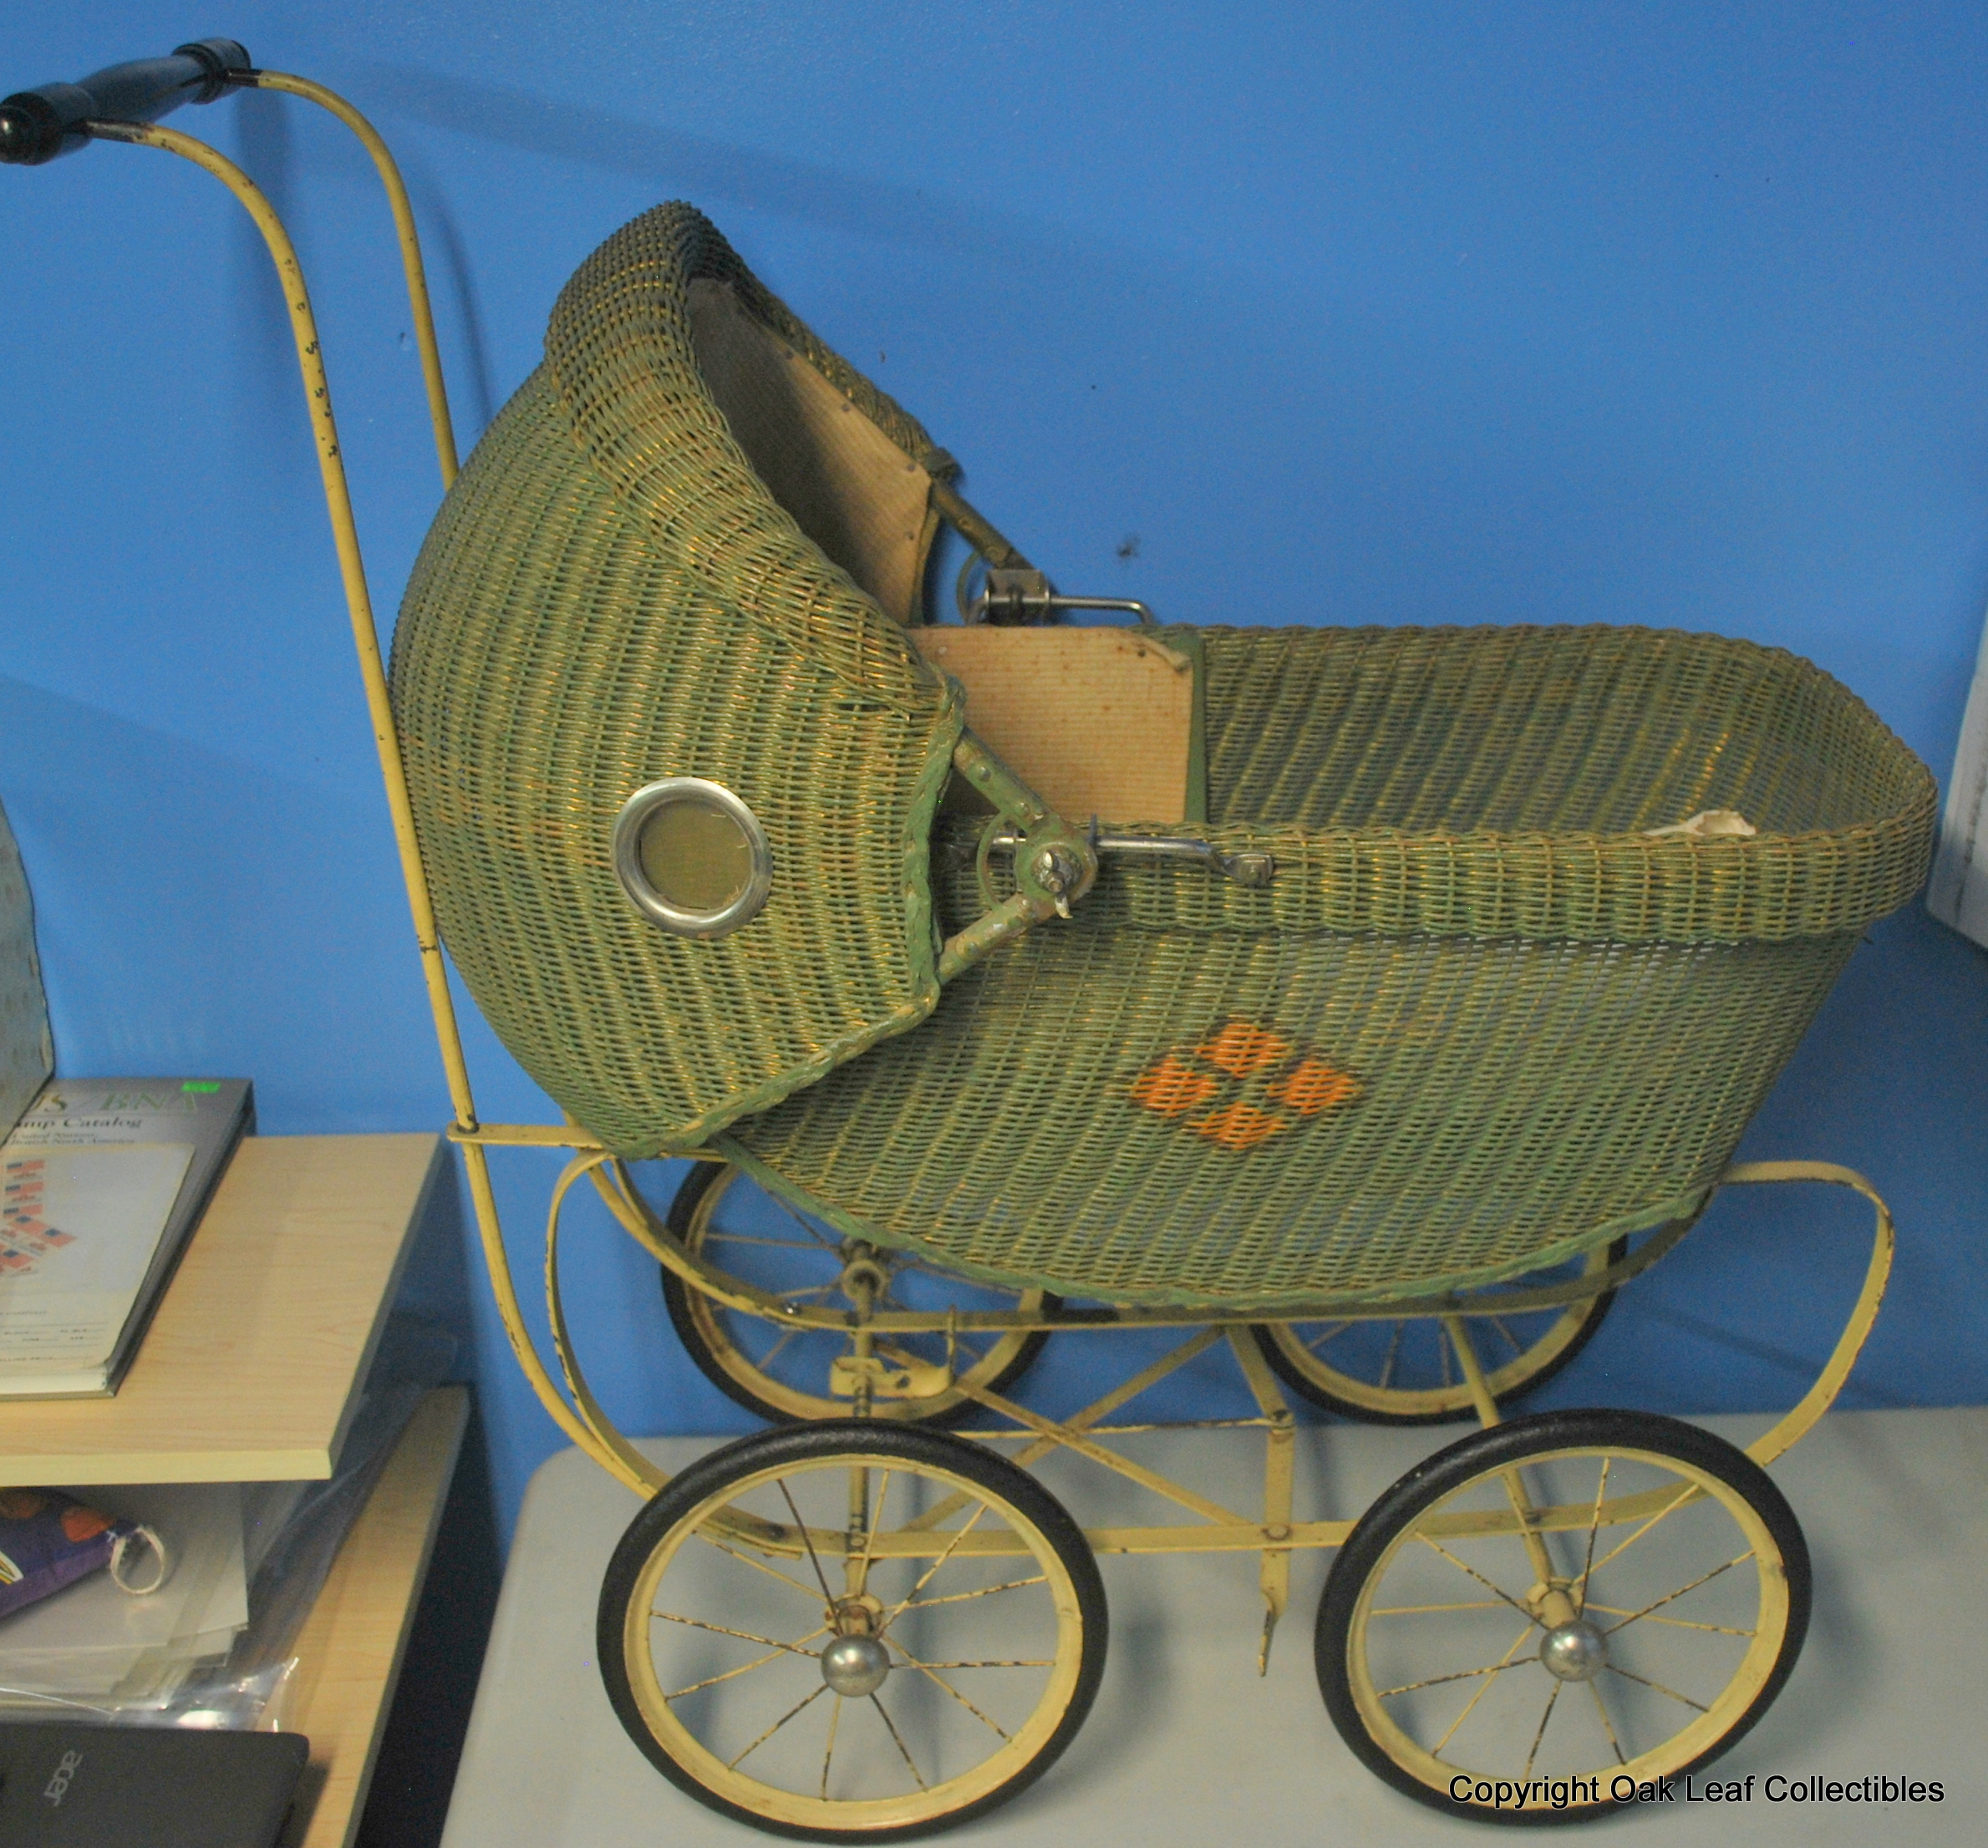 antique baby doll carriage cheaper than retail price buy clothing accessories and lifestyle products for women men